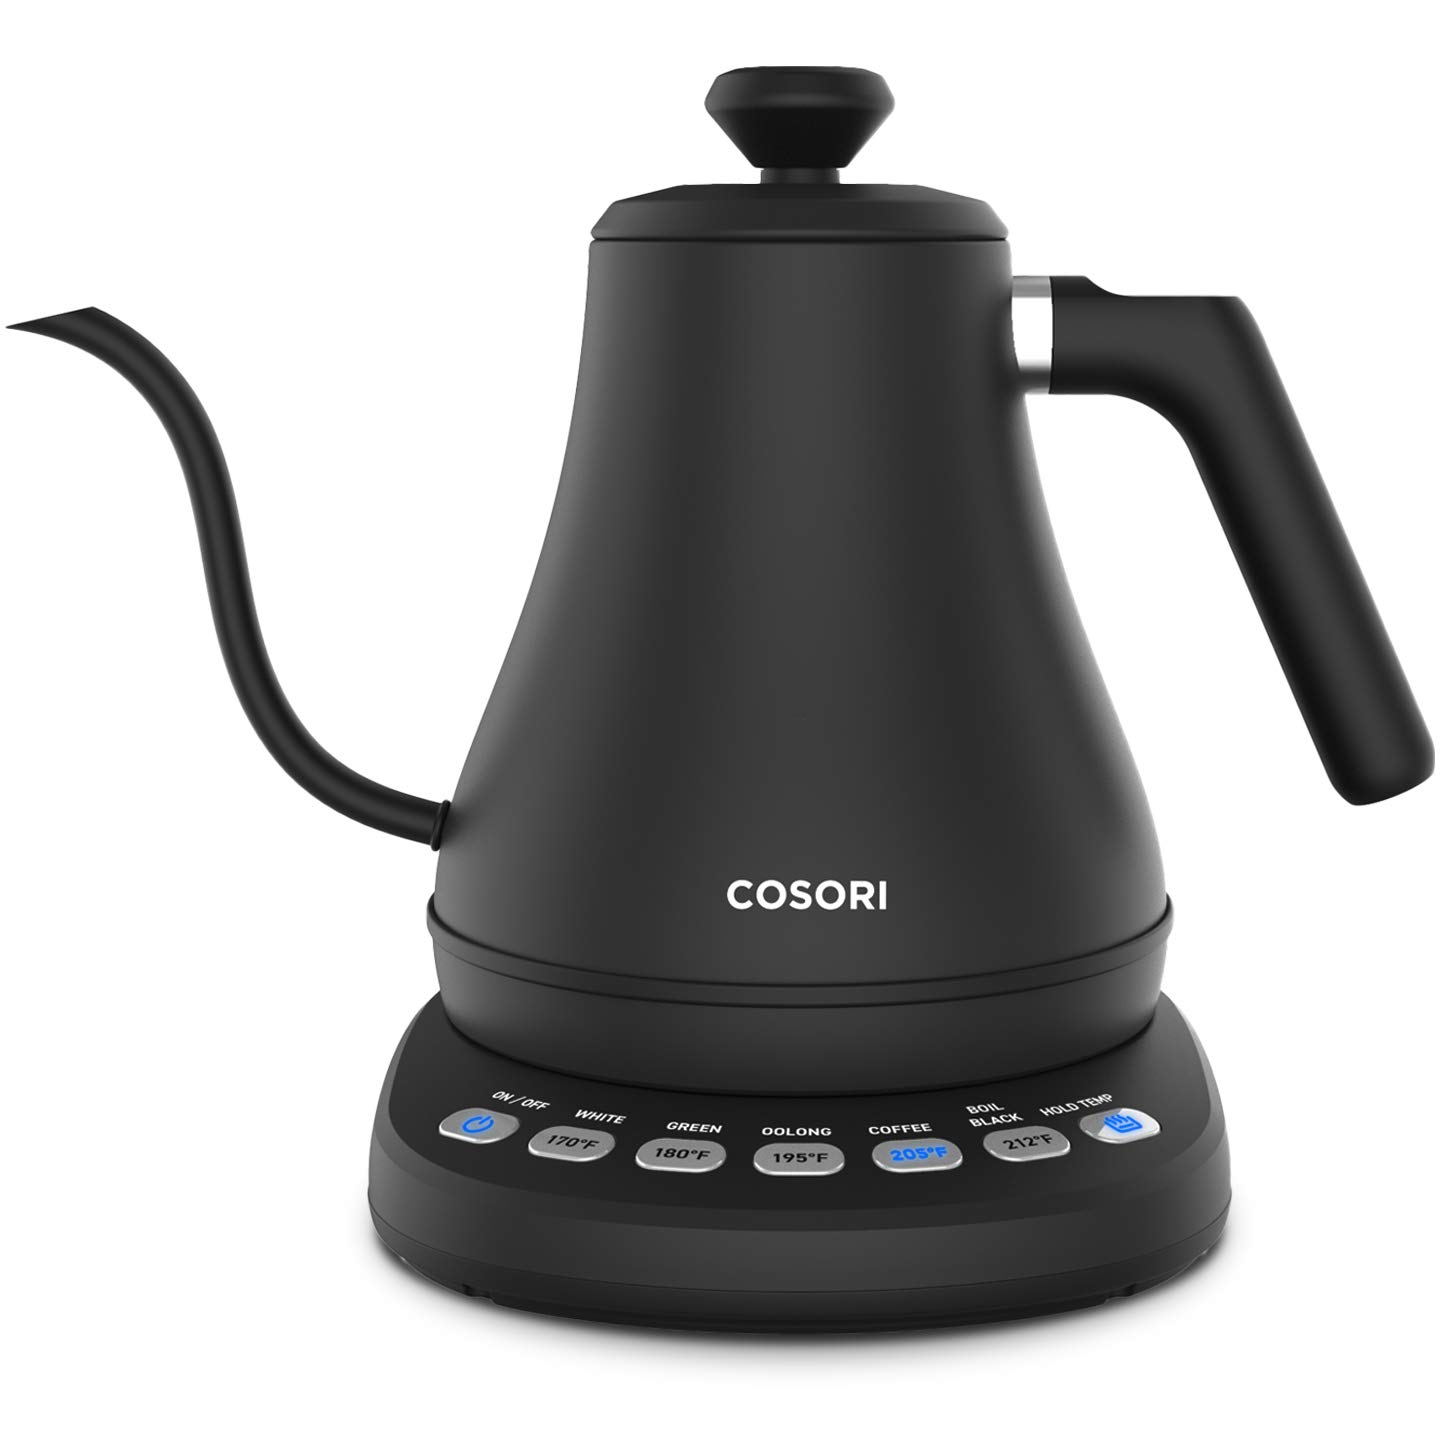 COSORI Electric Gooseneck Variable Stainless